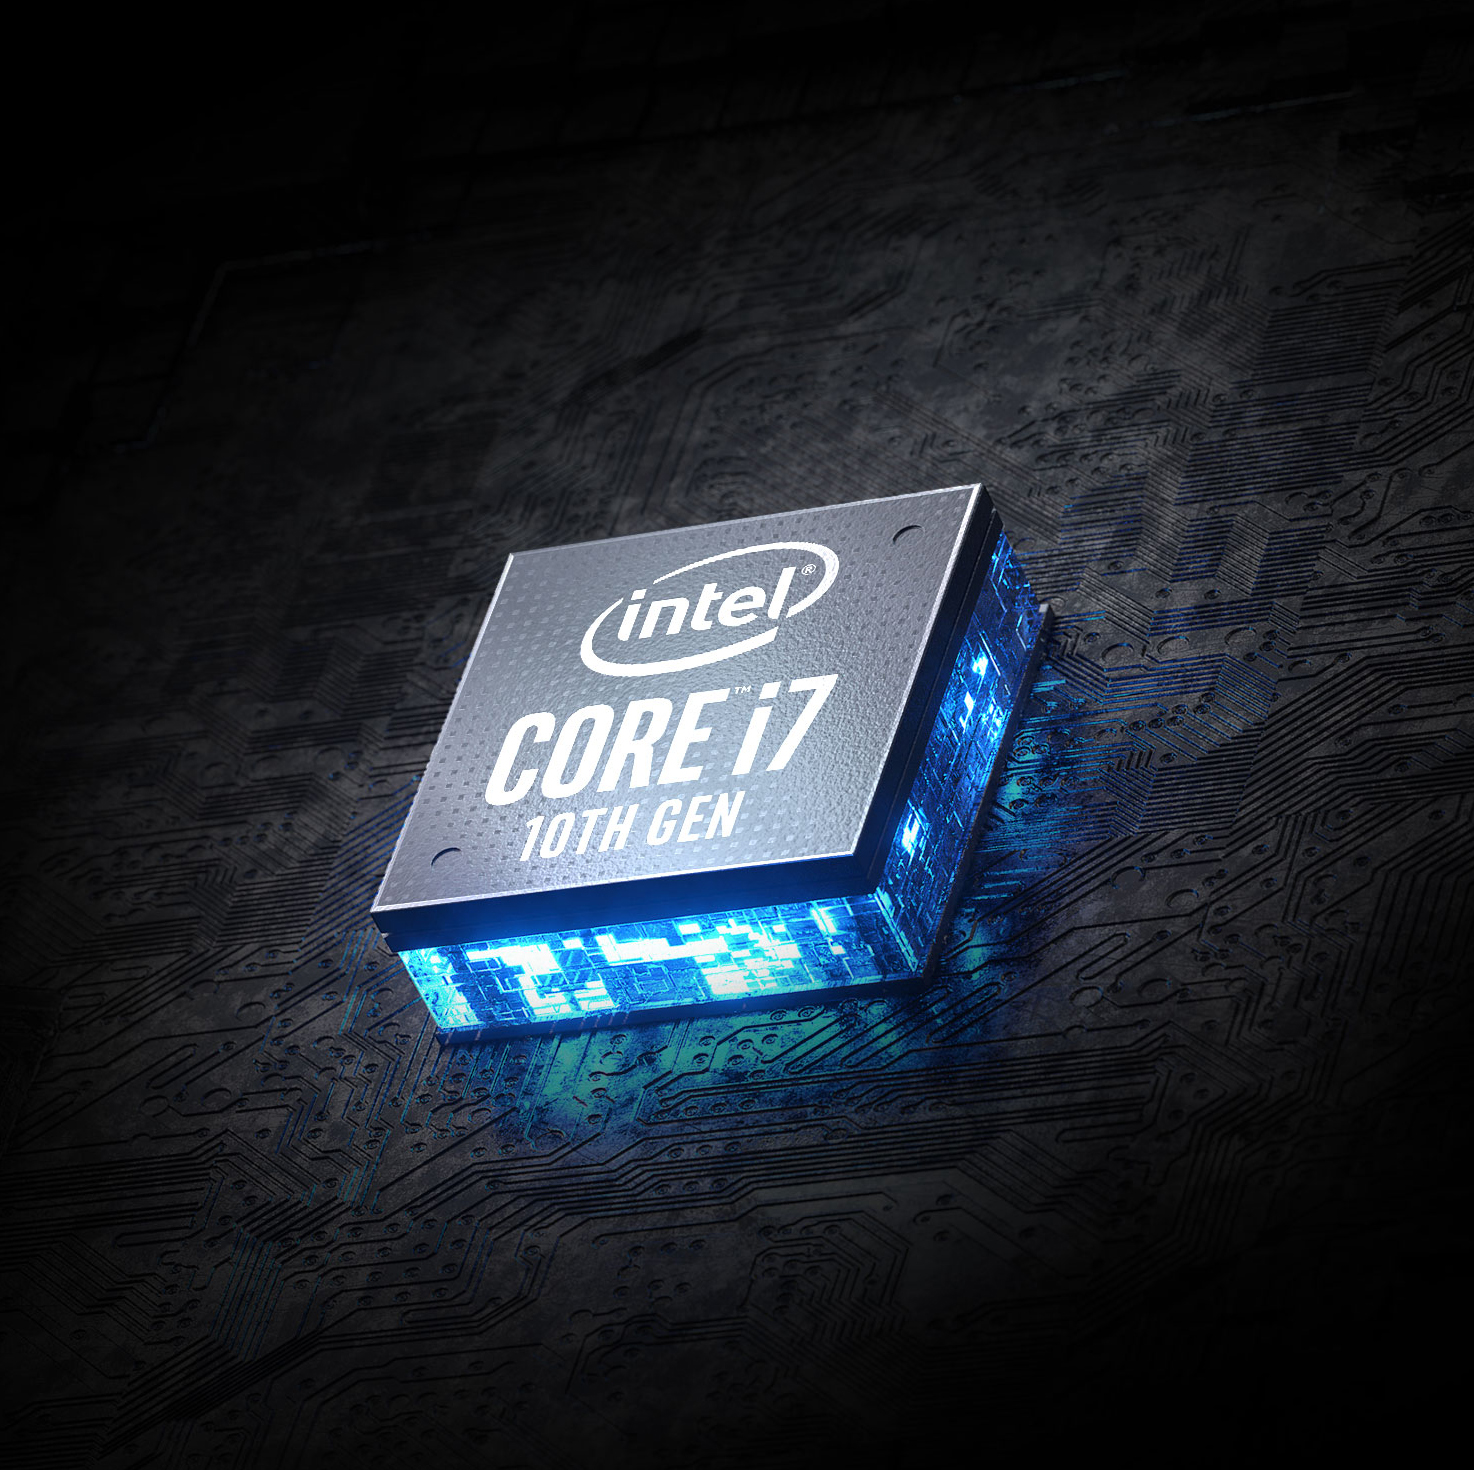 Intel Core i7 10th Gen in the center.